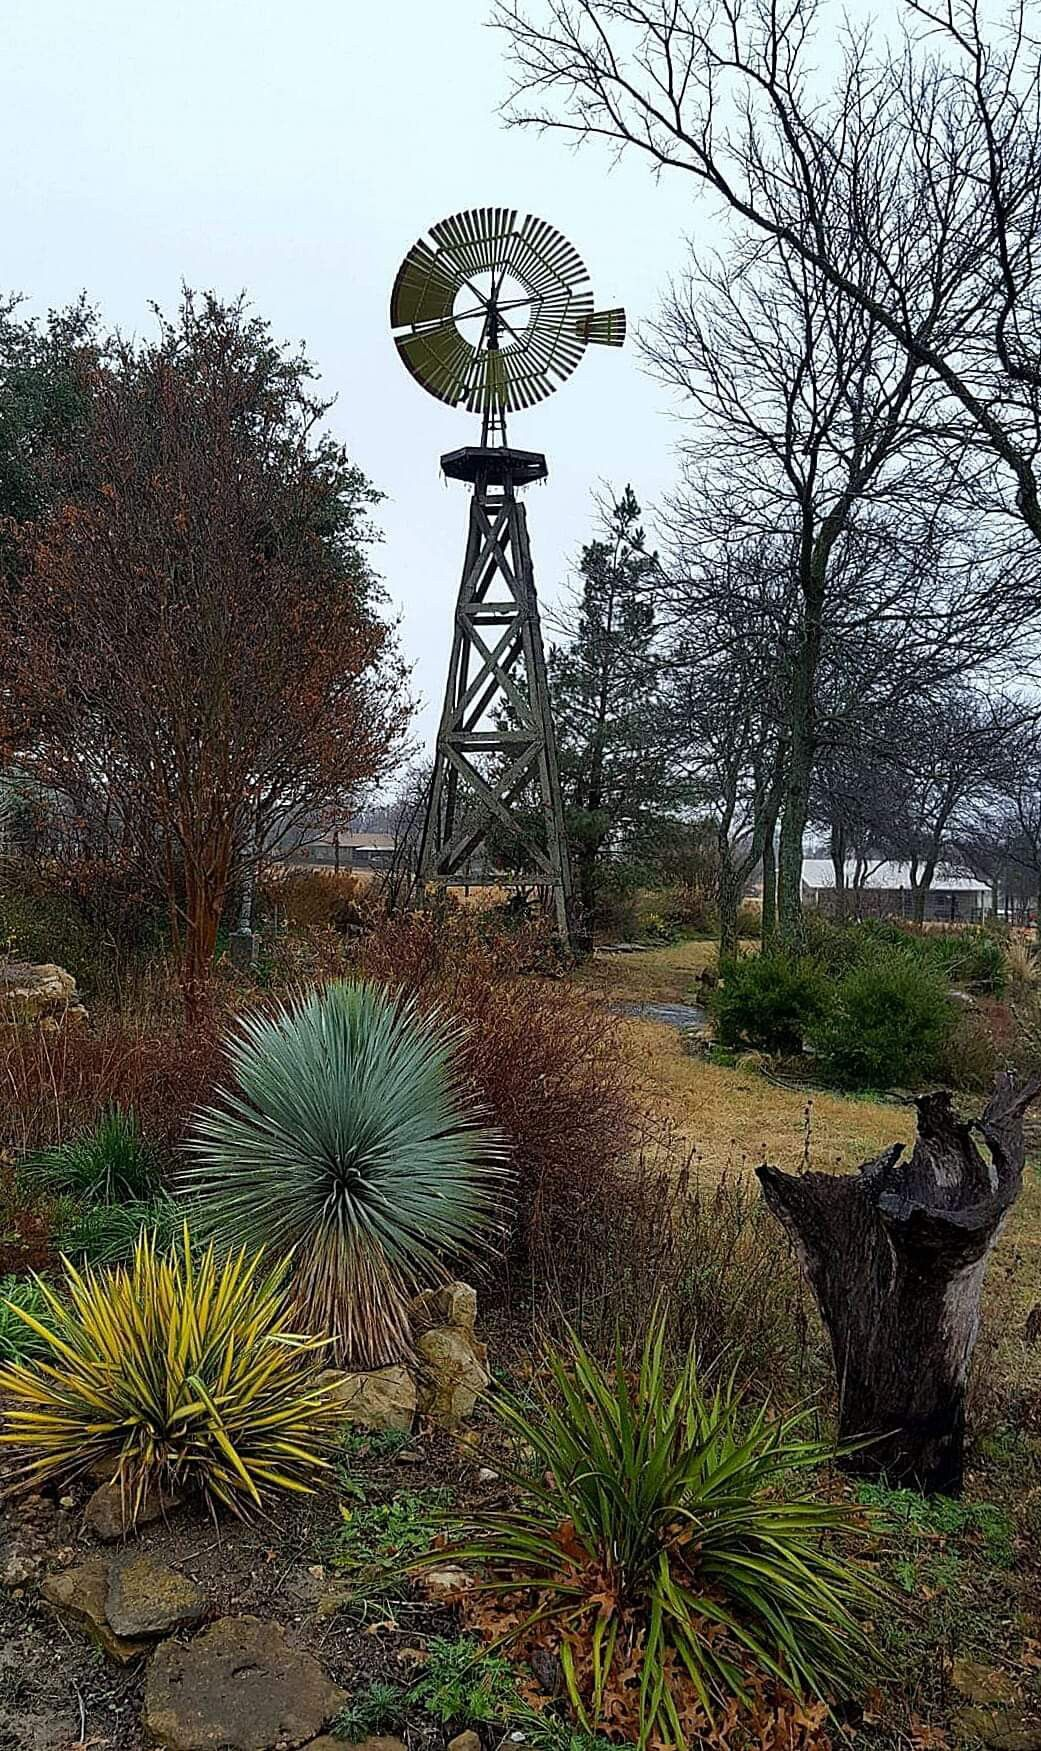 A wind pump in Decatur, Texas | Don Quixote's Nightmare in